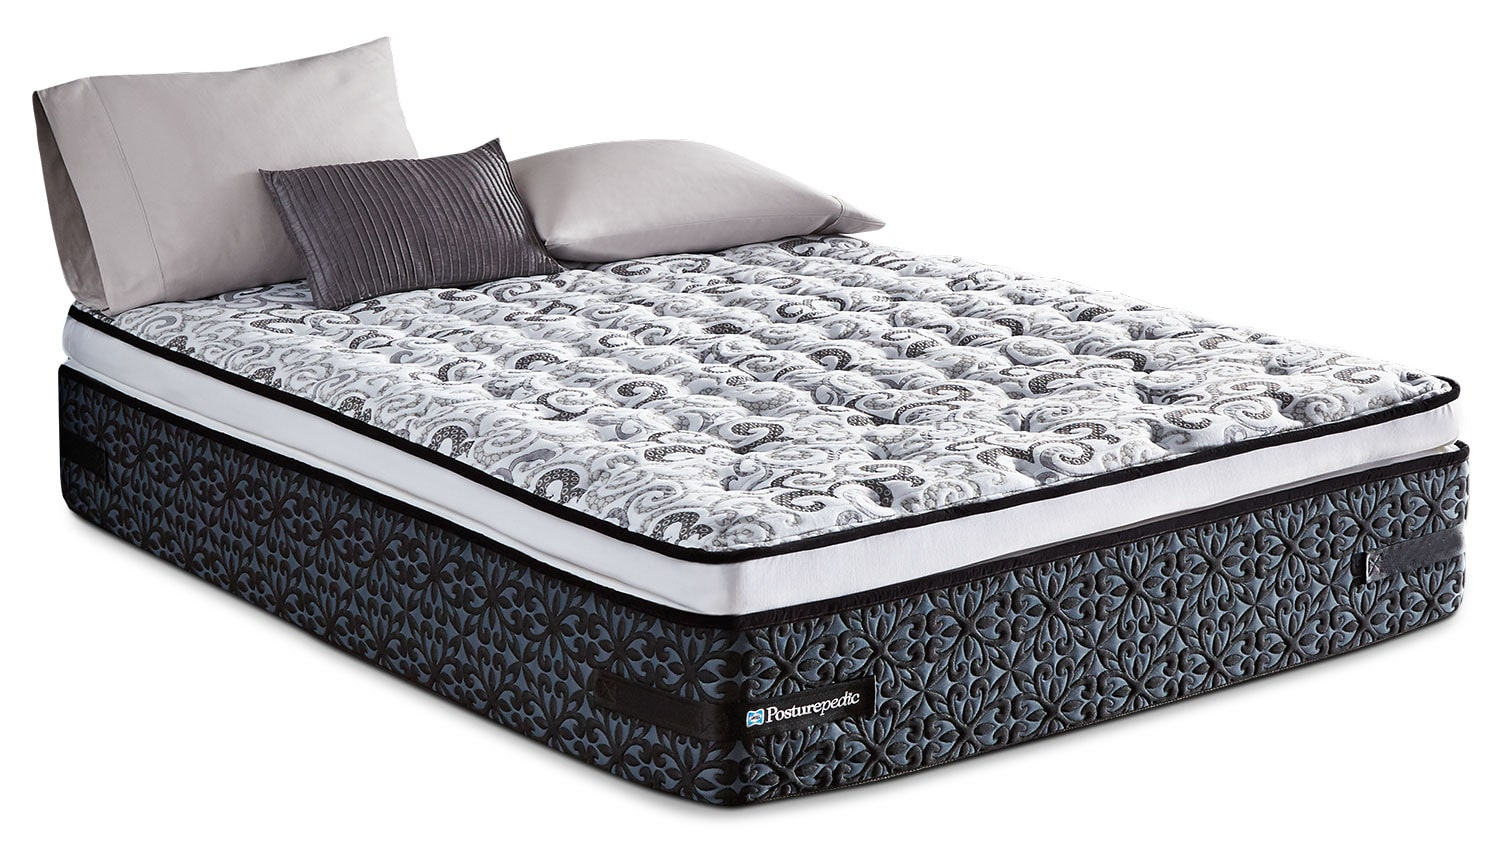 Mattresses and Bedding - Sealy Crown Jewel Luxe Summer Crest Euro Pillow-Top Twin XL Mattress